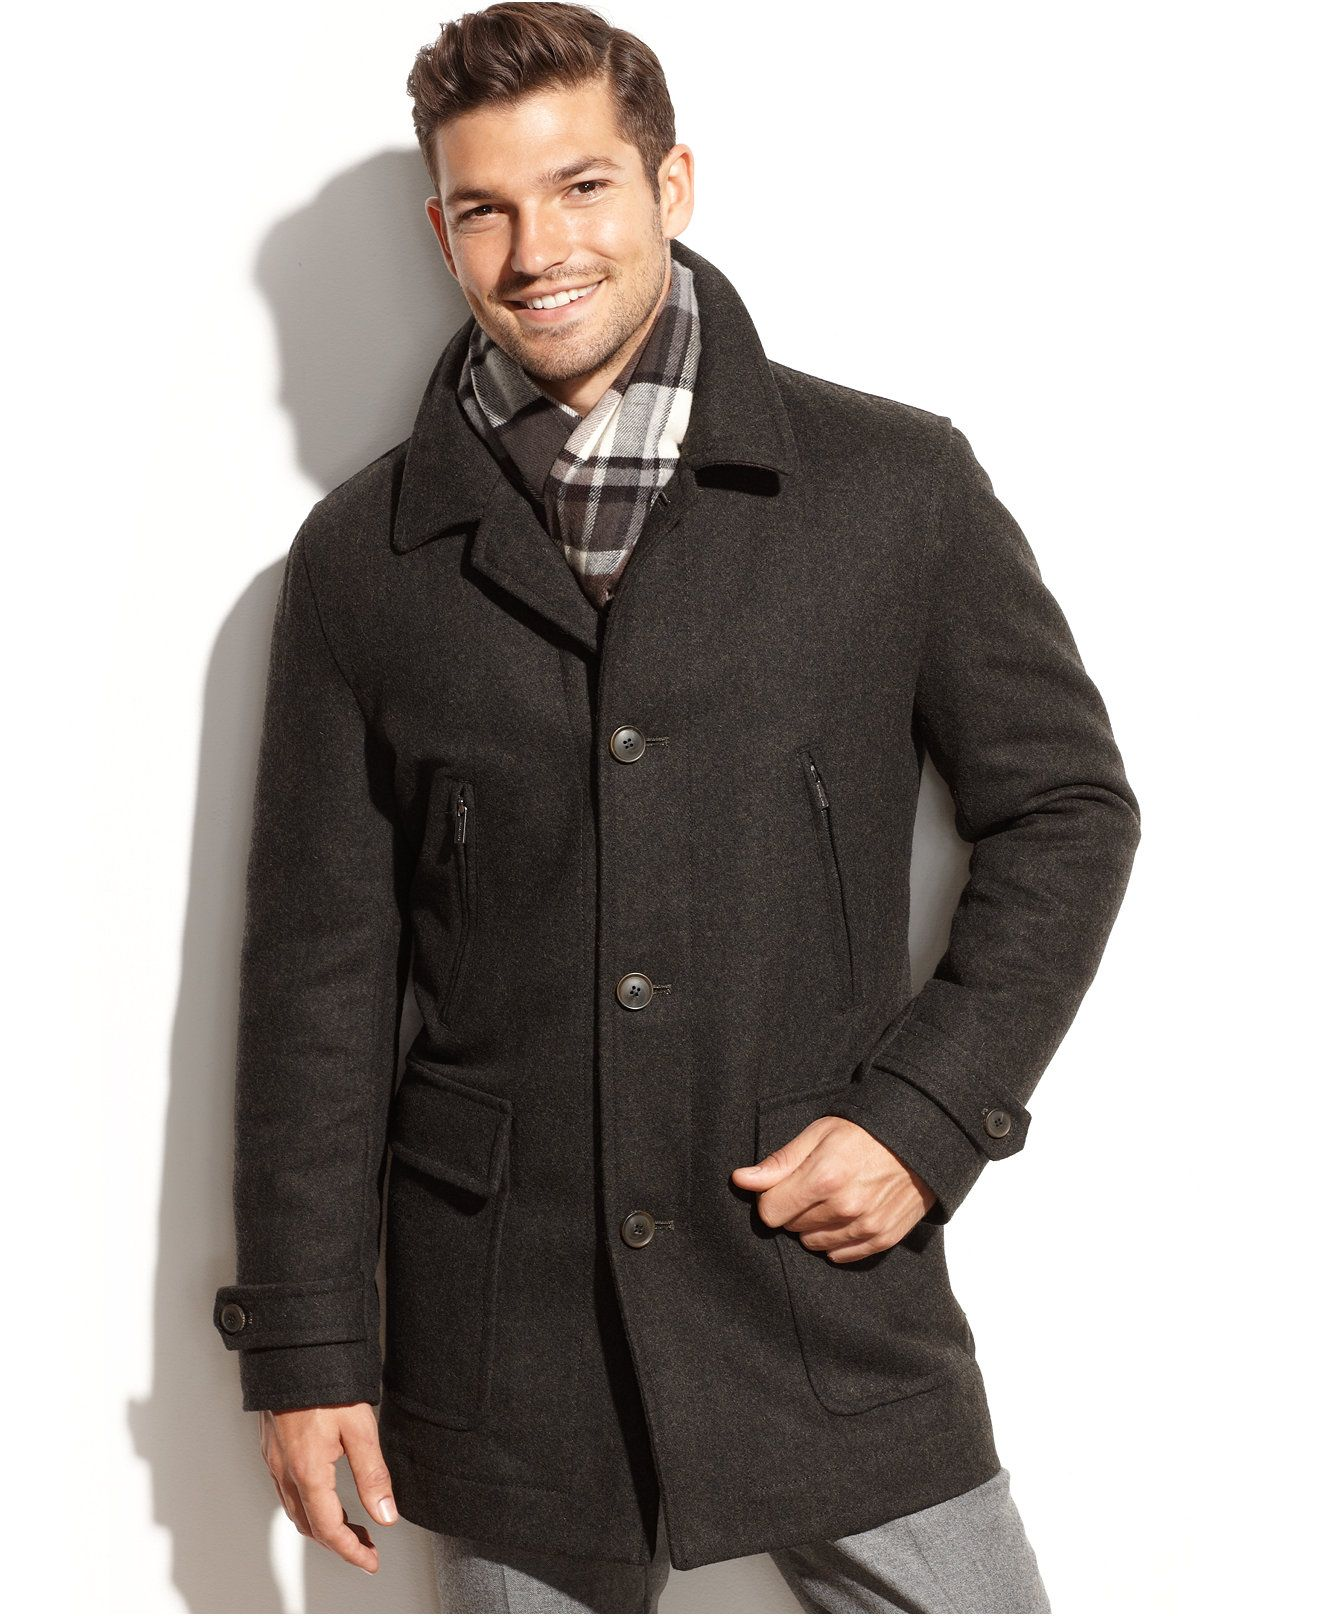 Car Coats For Men